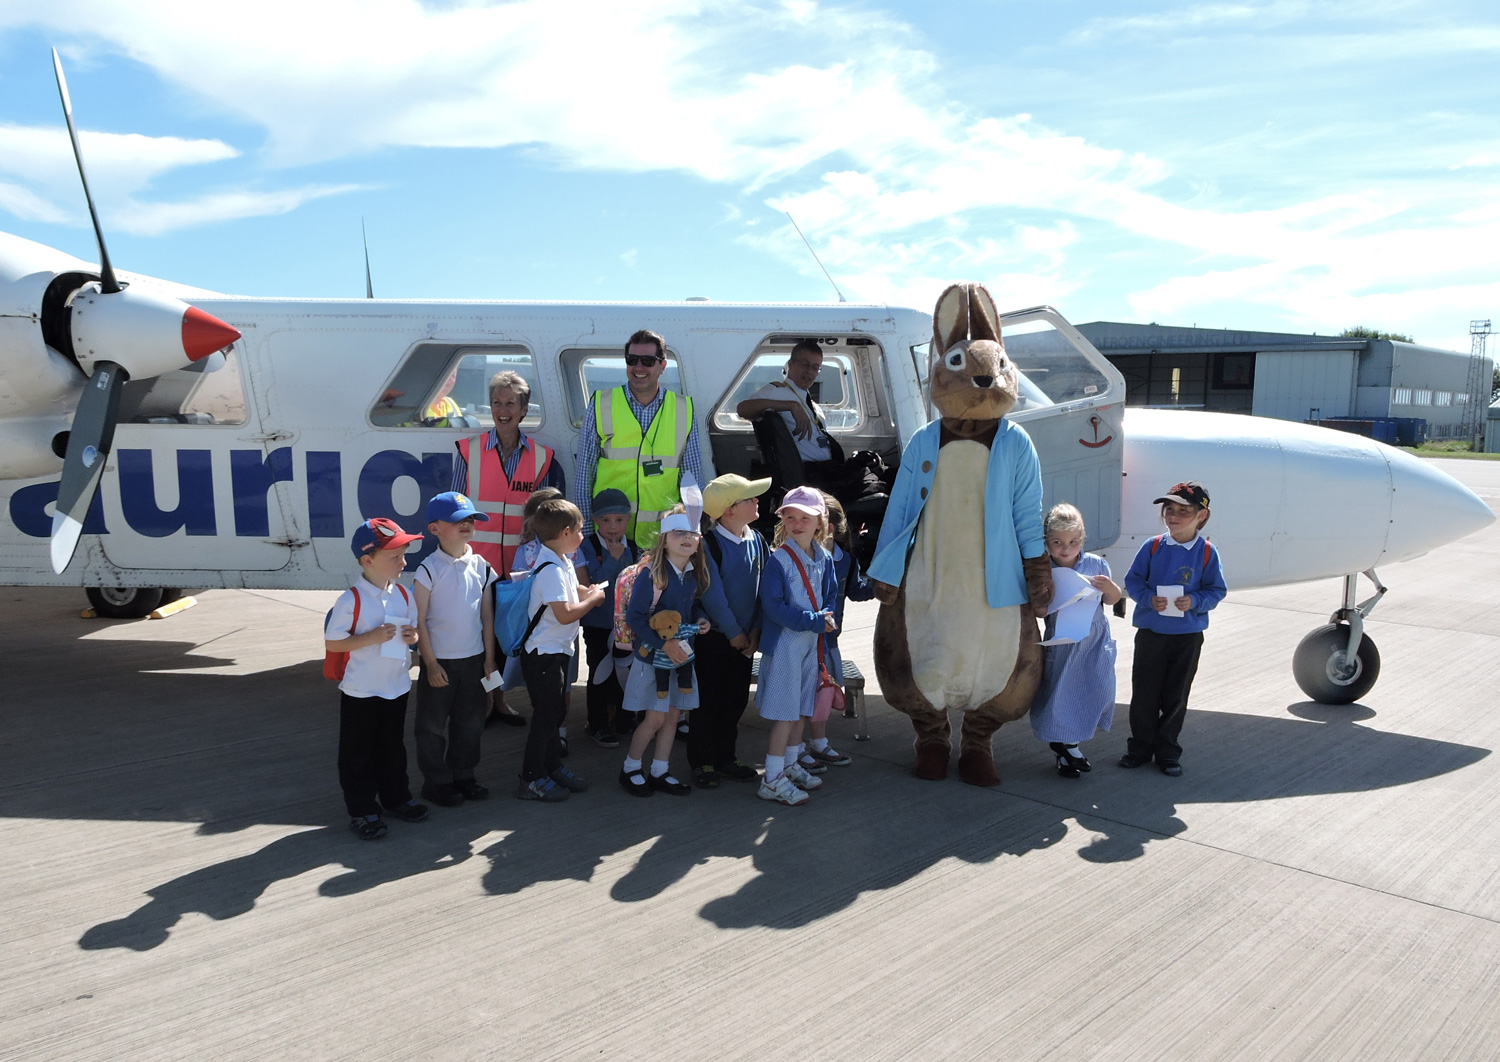 Peter Rabbit saying farewell to his new friends from Alderney